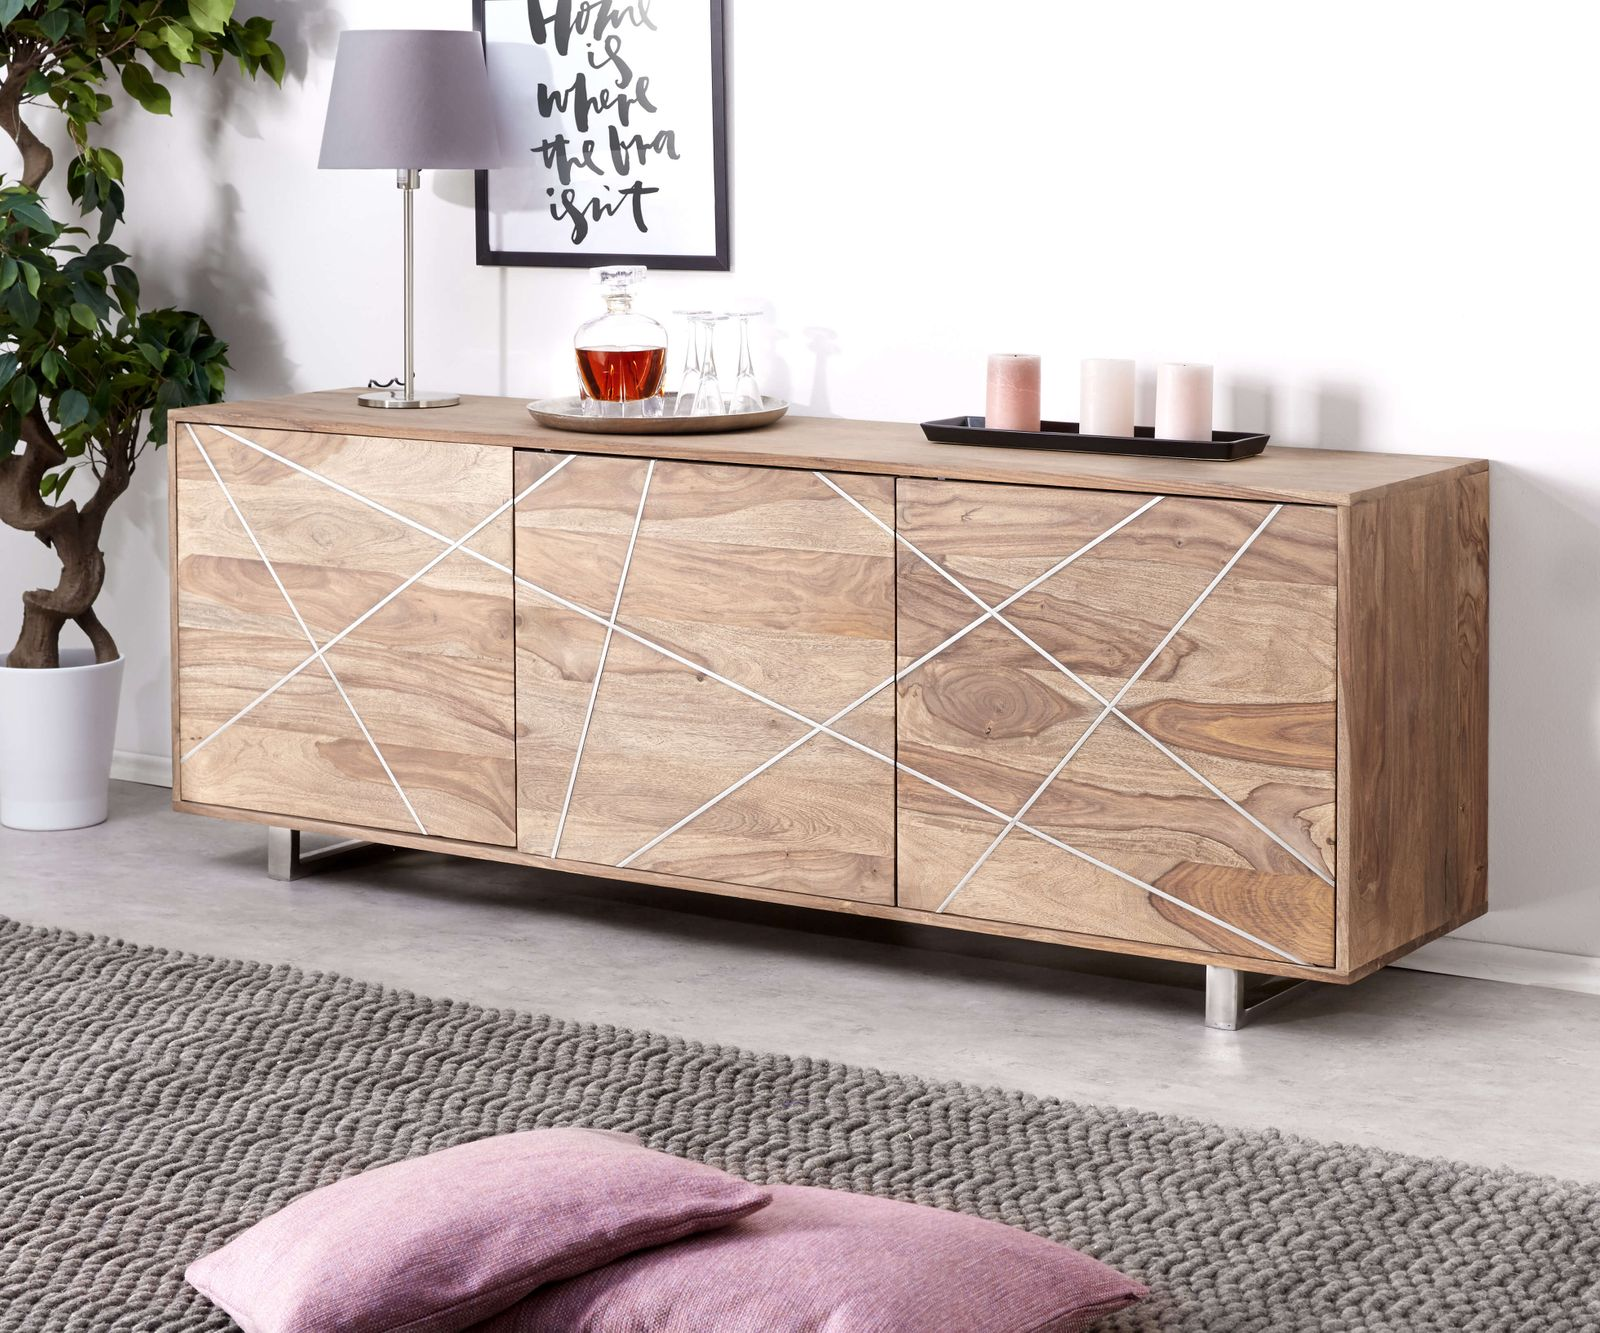 designer sideboard wyatt 175 cm sheesham natur 3 t ren m bel kommoden schr nke sideboards. Black Bedroom Furniture Sets. Home Design Ideas